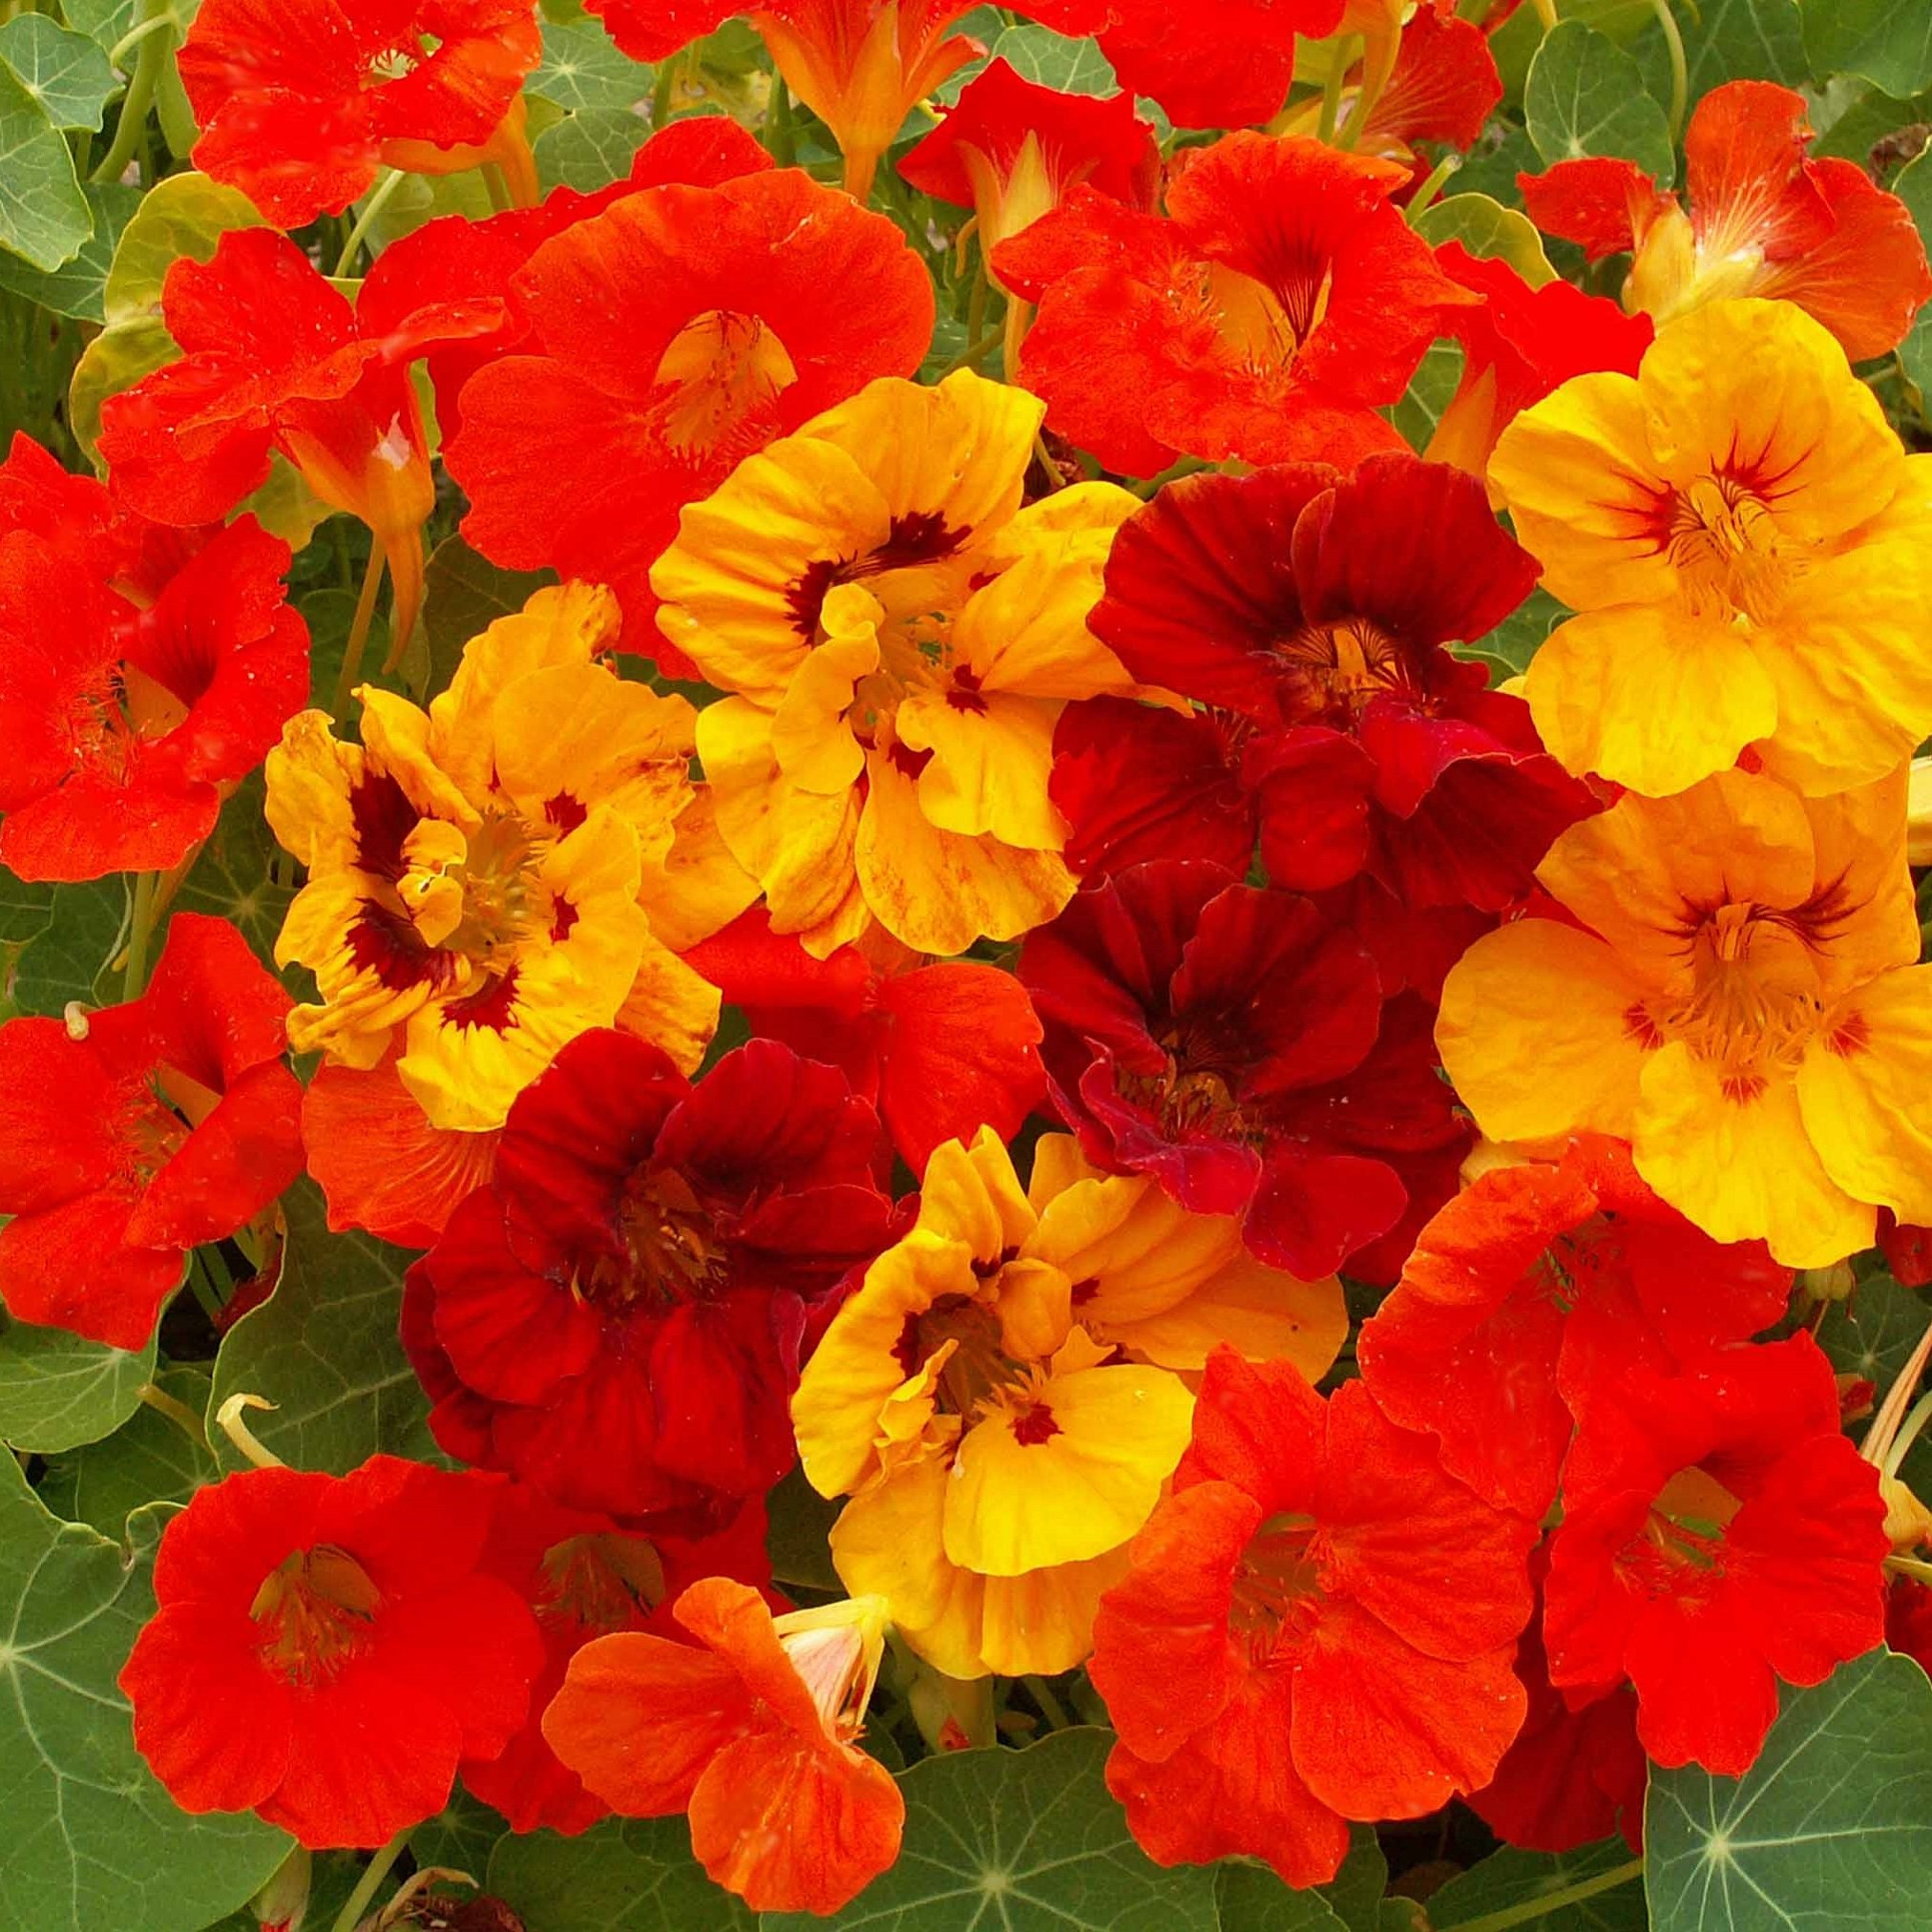 Outsidepride Nasturtium Flower Seed Mix - 5 LBS by Outsidepride